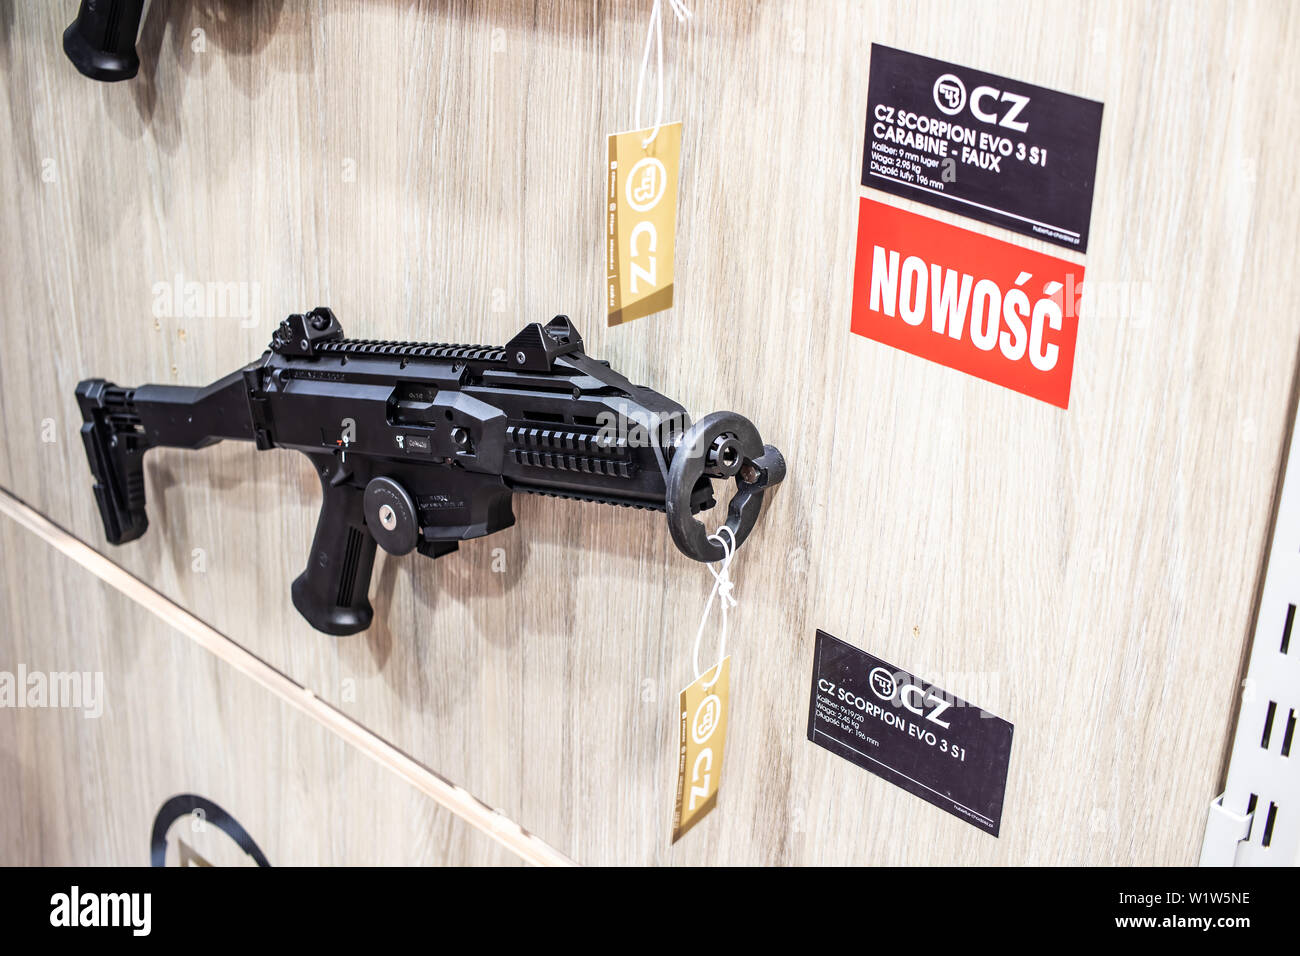 Poznan, Poland, Feb 2019 CZ CZUB Ceska Zbrojovka Scorpion, Bren, rifles, guns, carbines, exposition, KNIEJE Hunting shooting fair Stock Photo